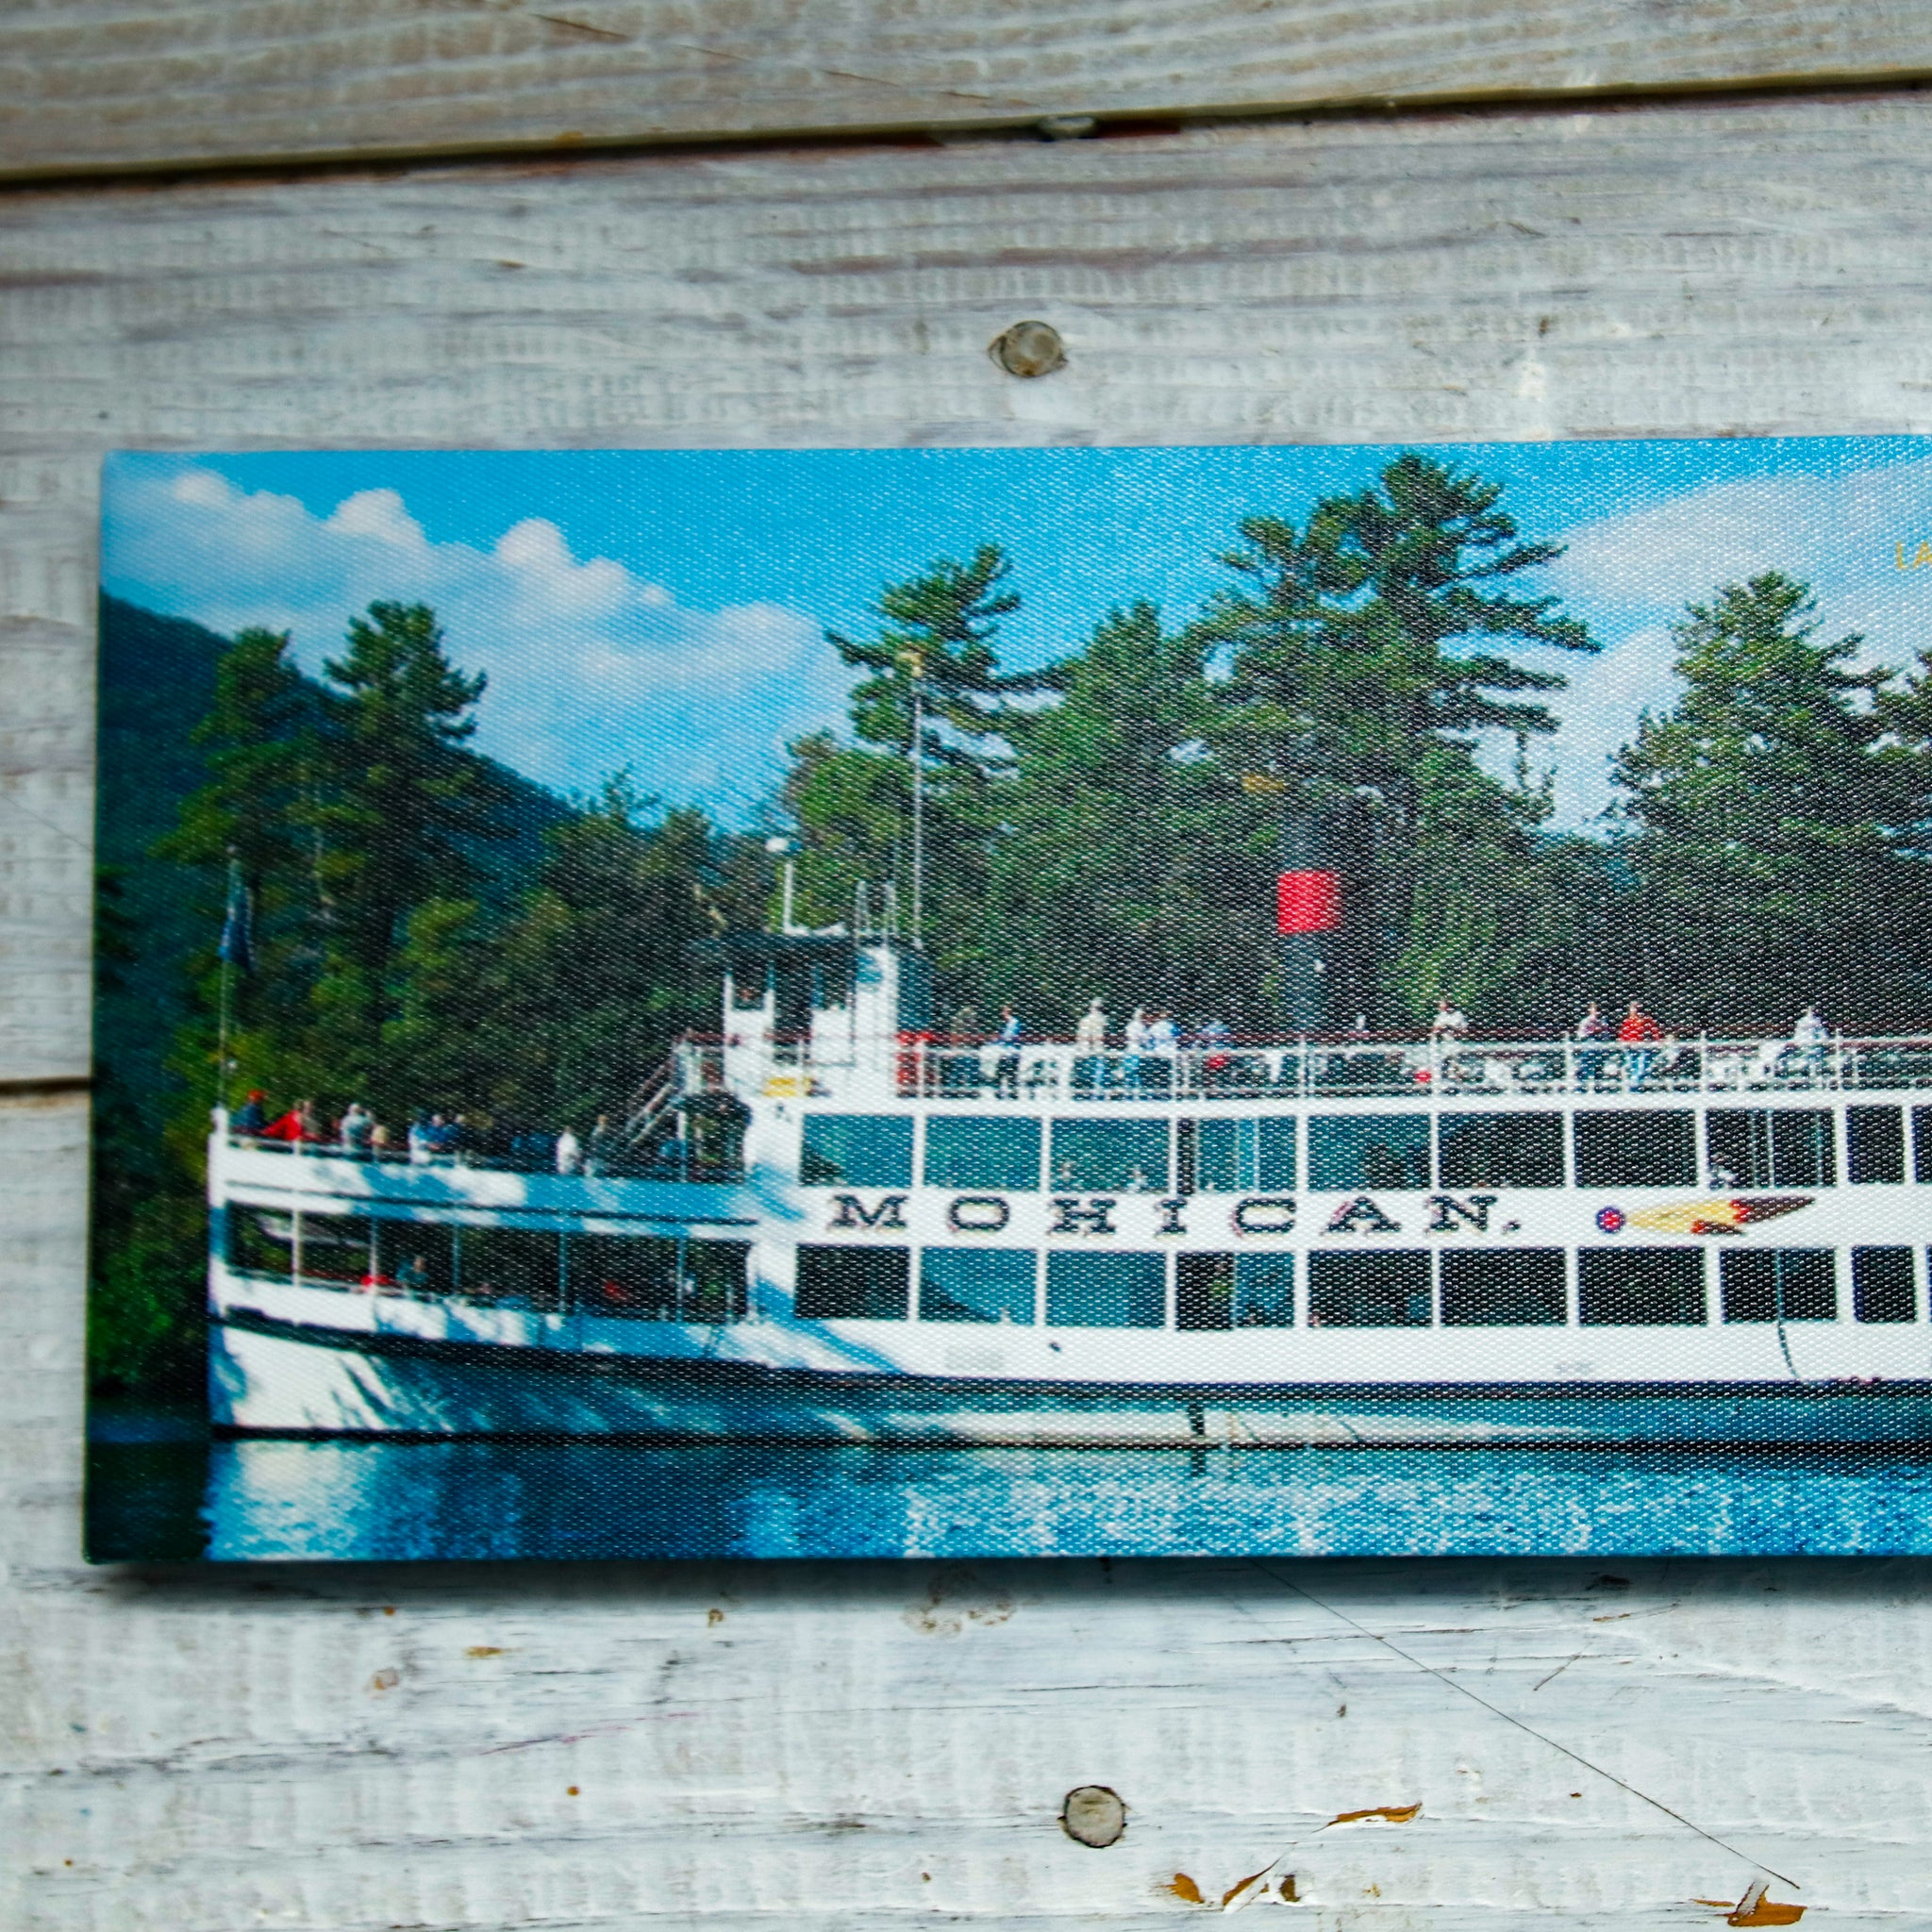 Mohican Canvas Wrap Frame Photo